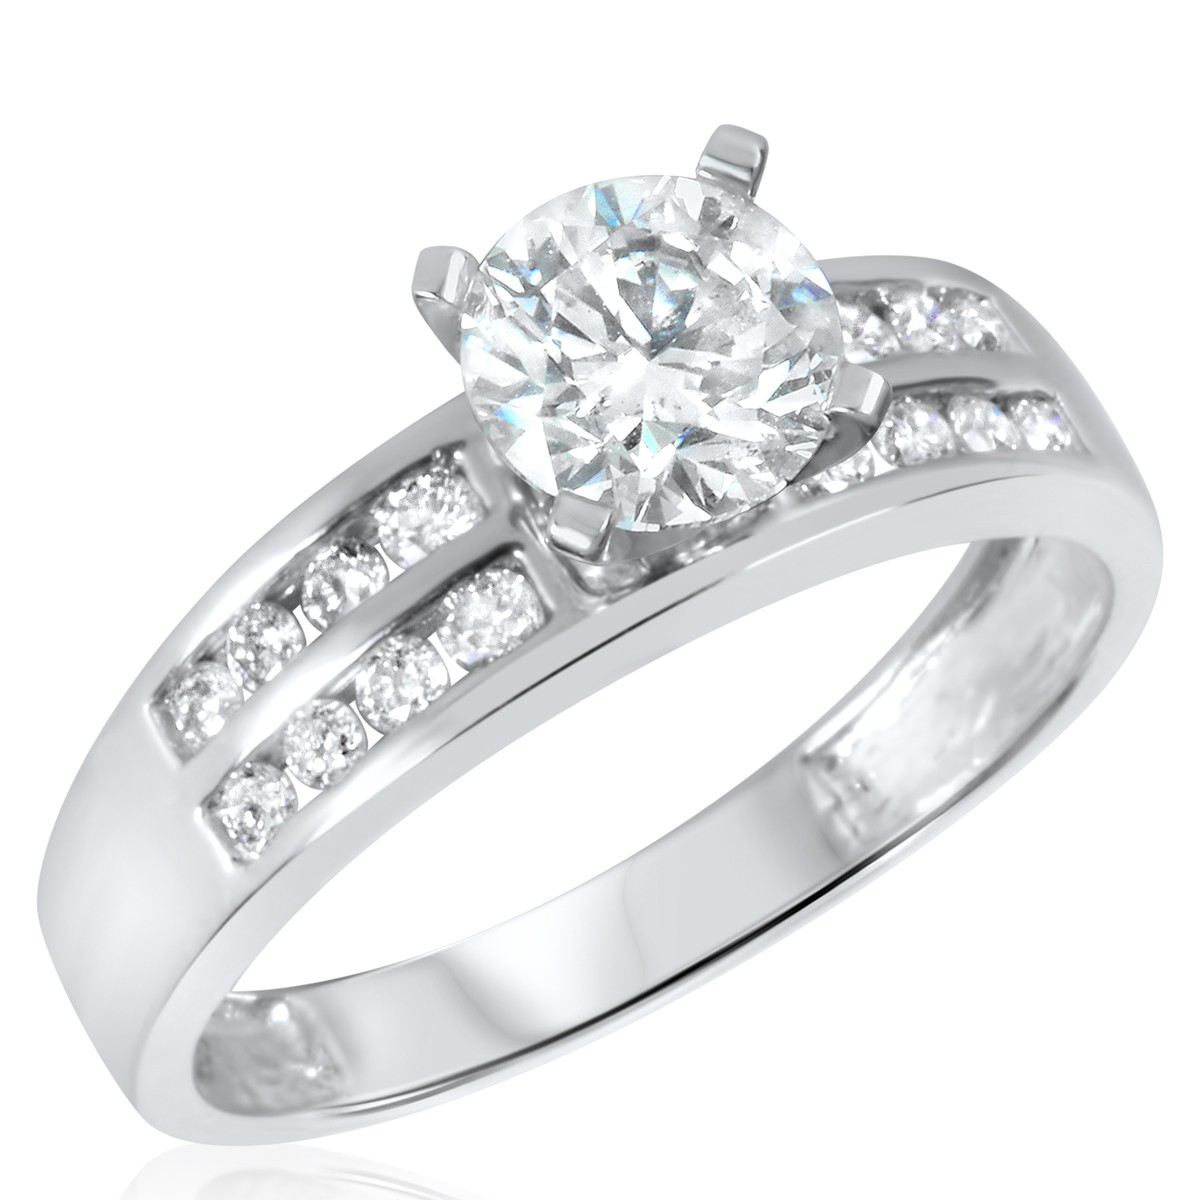 1 1/3 CT. T.W. Diamond Ladies Engagement Ring 10K White Gold